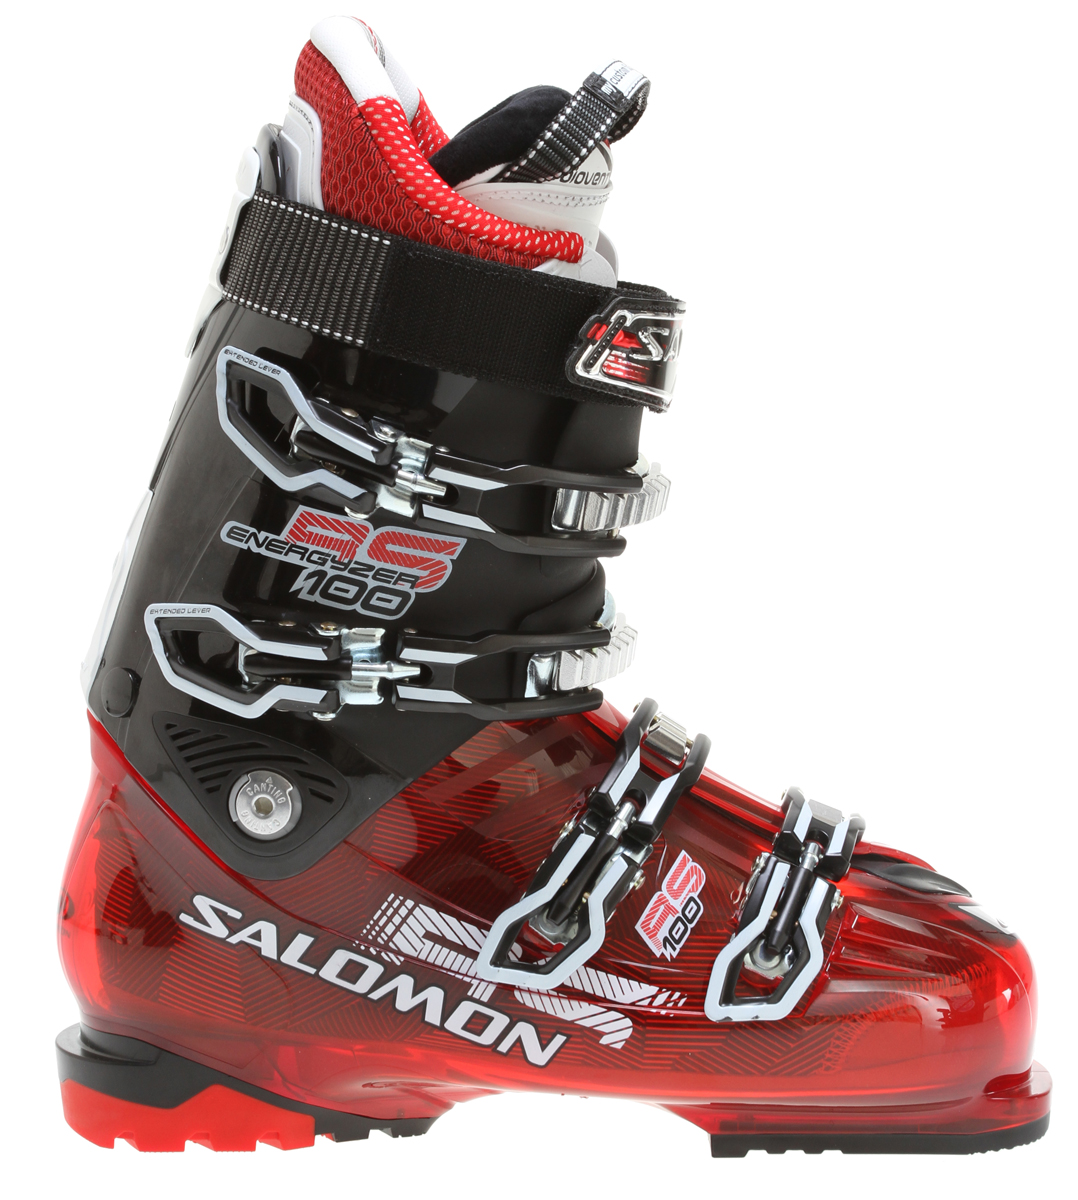 Ski Performance all-mountain boot designed for all day comfort and improved control with today's modern ski designs.Key Features of the Salomon RS 100 Ski Boots: Bi material PU lower shell Bi-material PU upper cuff Progressive Flex Cuff design Advanced Shell Technology Tool free catch adjustment Single canting Heel and toe removable din pads Backbone My Custom Fit Performance Biovent Leather liner 4 micro titanium buckles Flex Index: 100 Last: 102 - $244.95